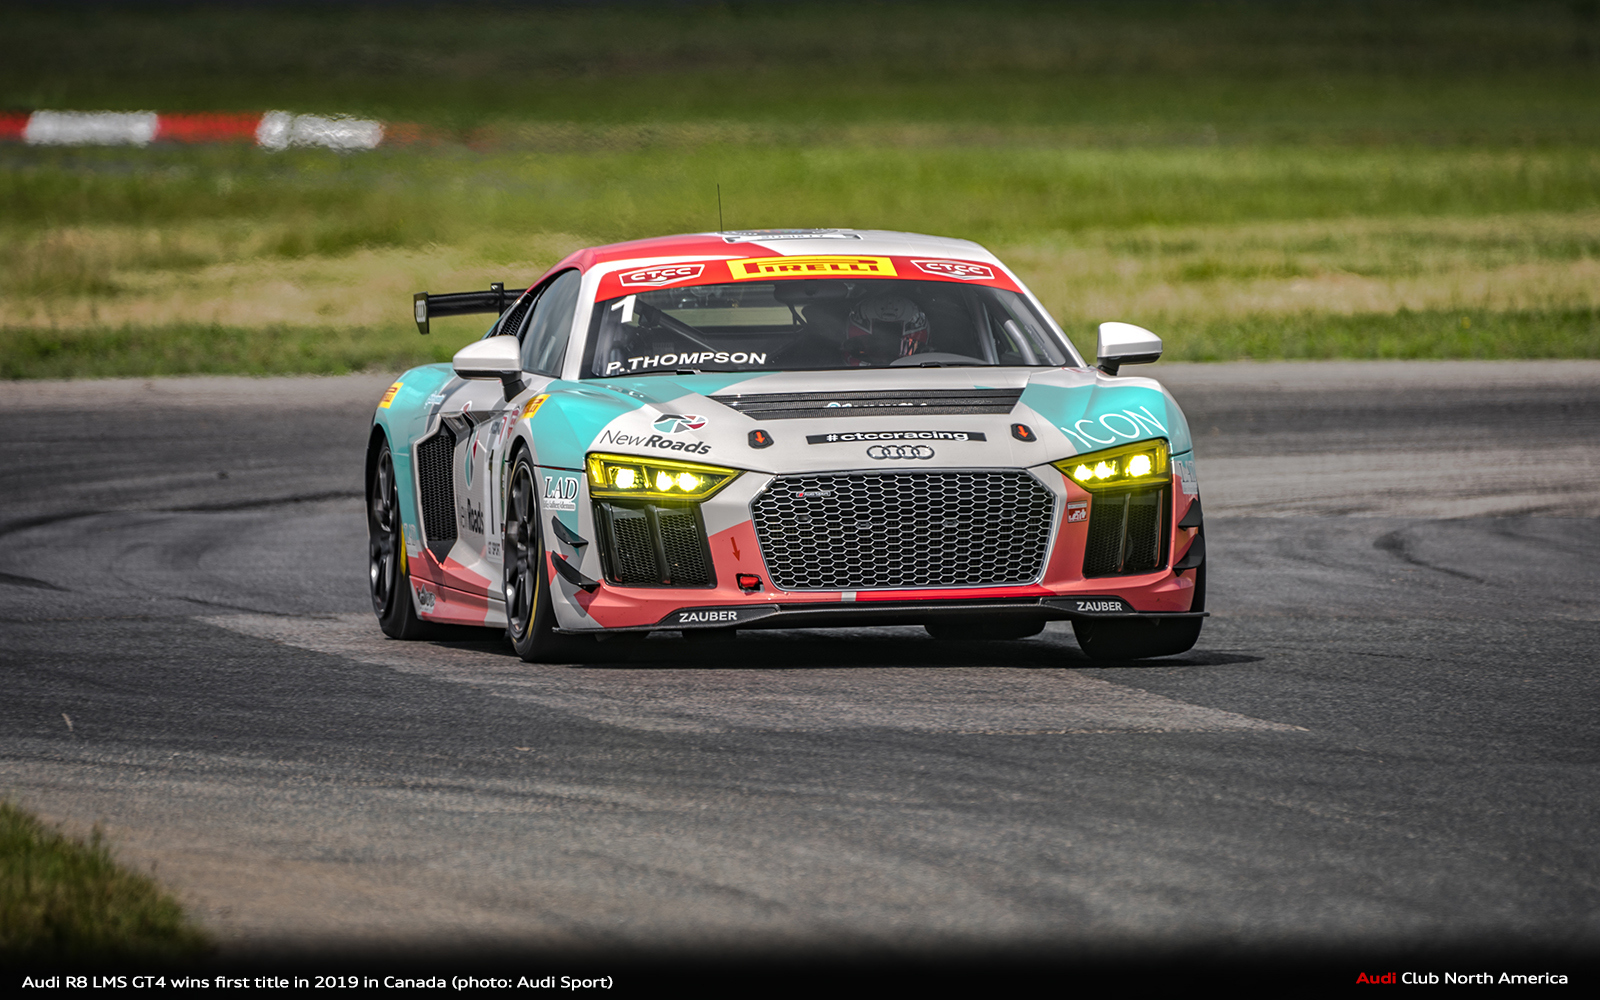 Audi R8 LMS GT4 Wins First Title in 2019 in Canada